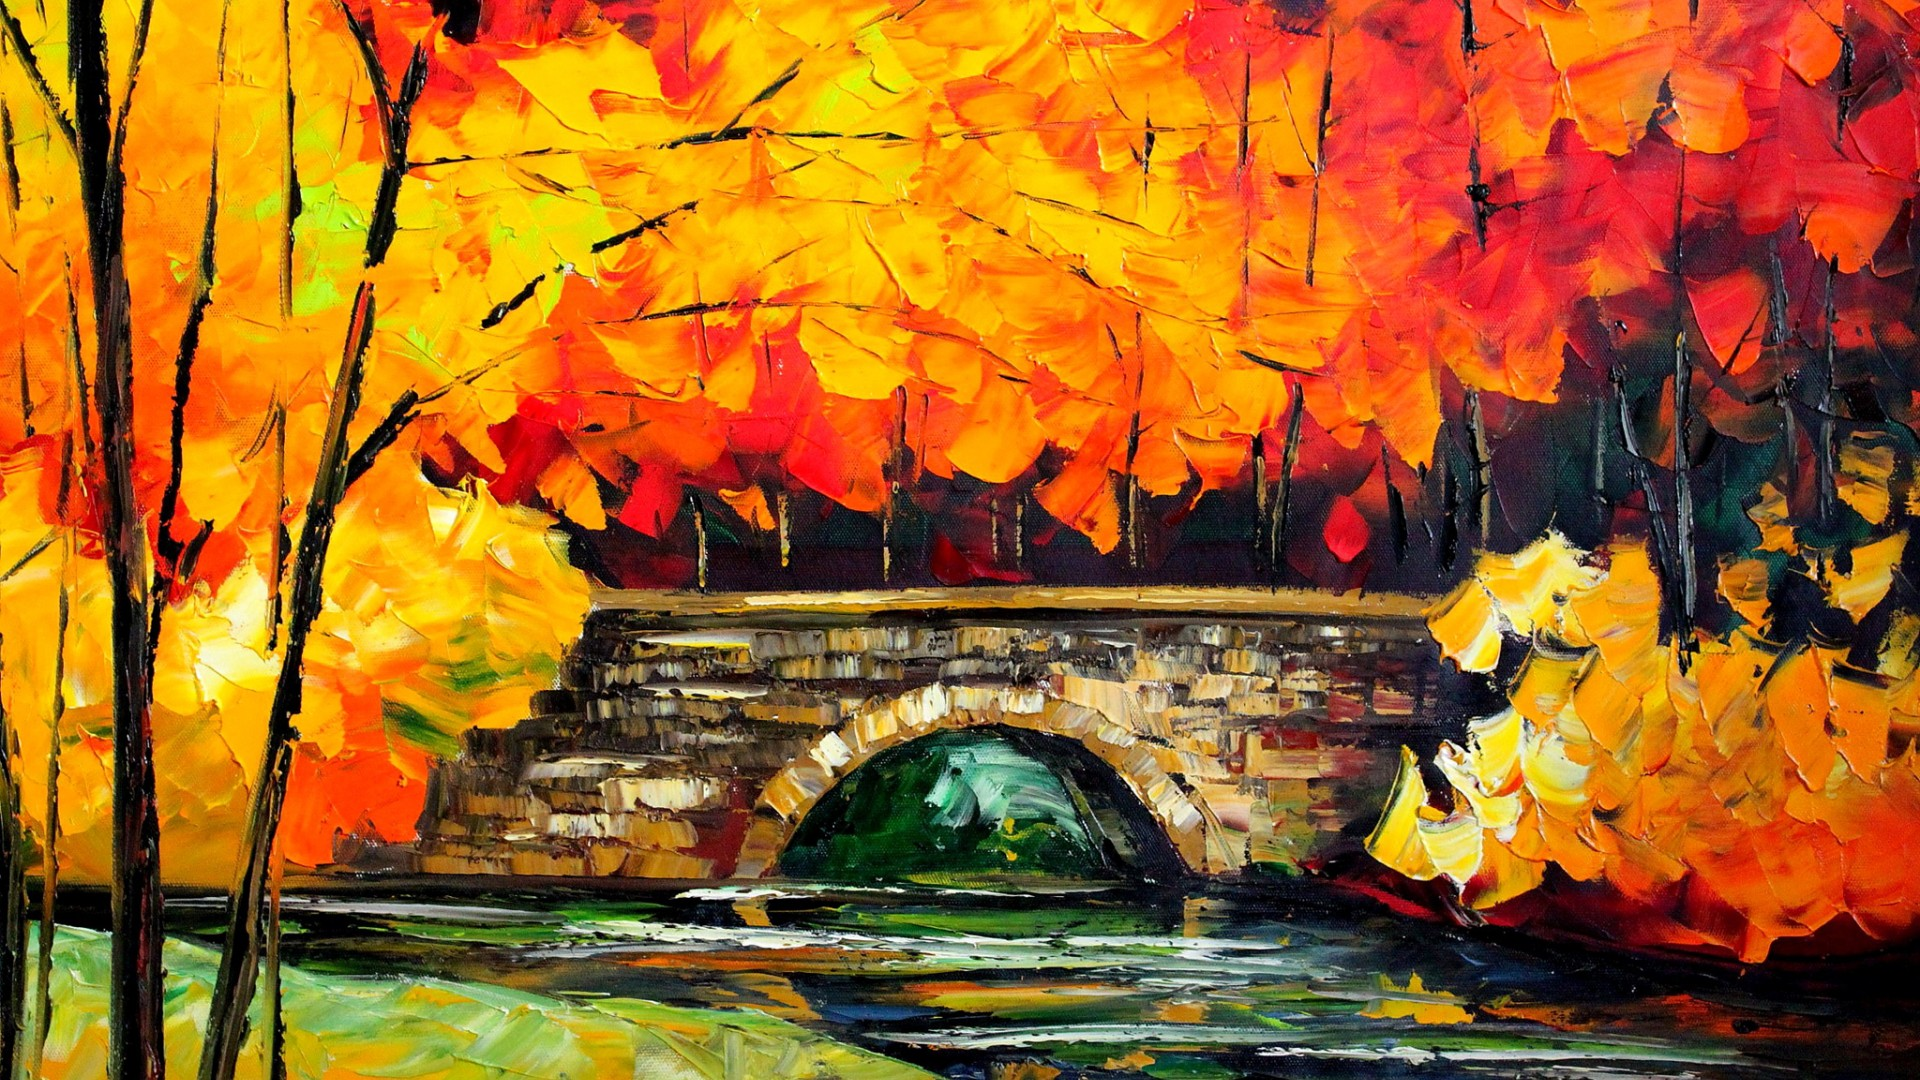 late autumn bridge painting hd wallpaper image free download